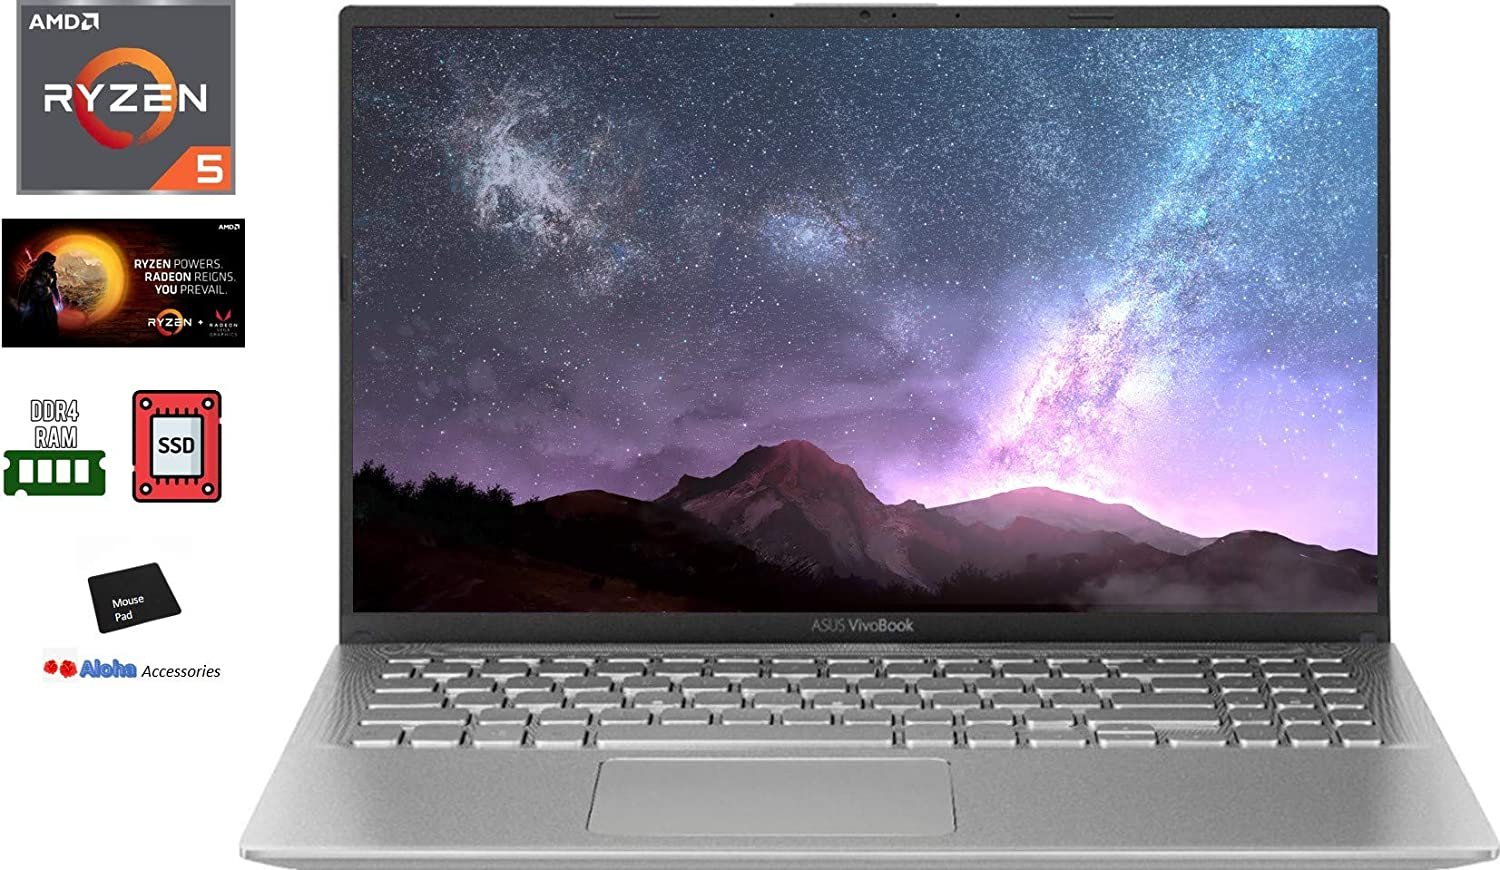 2020 ASUS VivoBook Ultra Thin and Lightweight 15.6'' Full HD Laptop Computer AMD Quad-Core Ryzen 5 3500U up to 3.7GHz 16GB DDR4 RAM 512GB PCIe SSD Radeon Vega Graphics Bluetooth Windows 10 Aloh Bundle